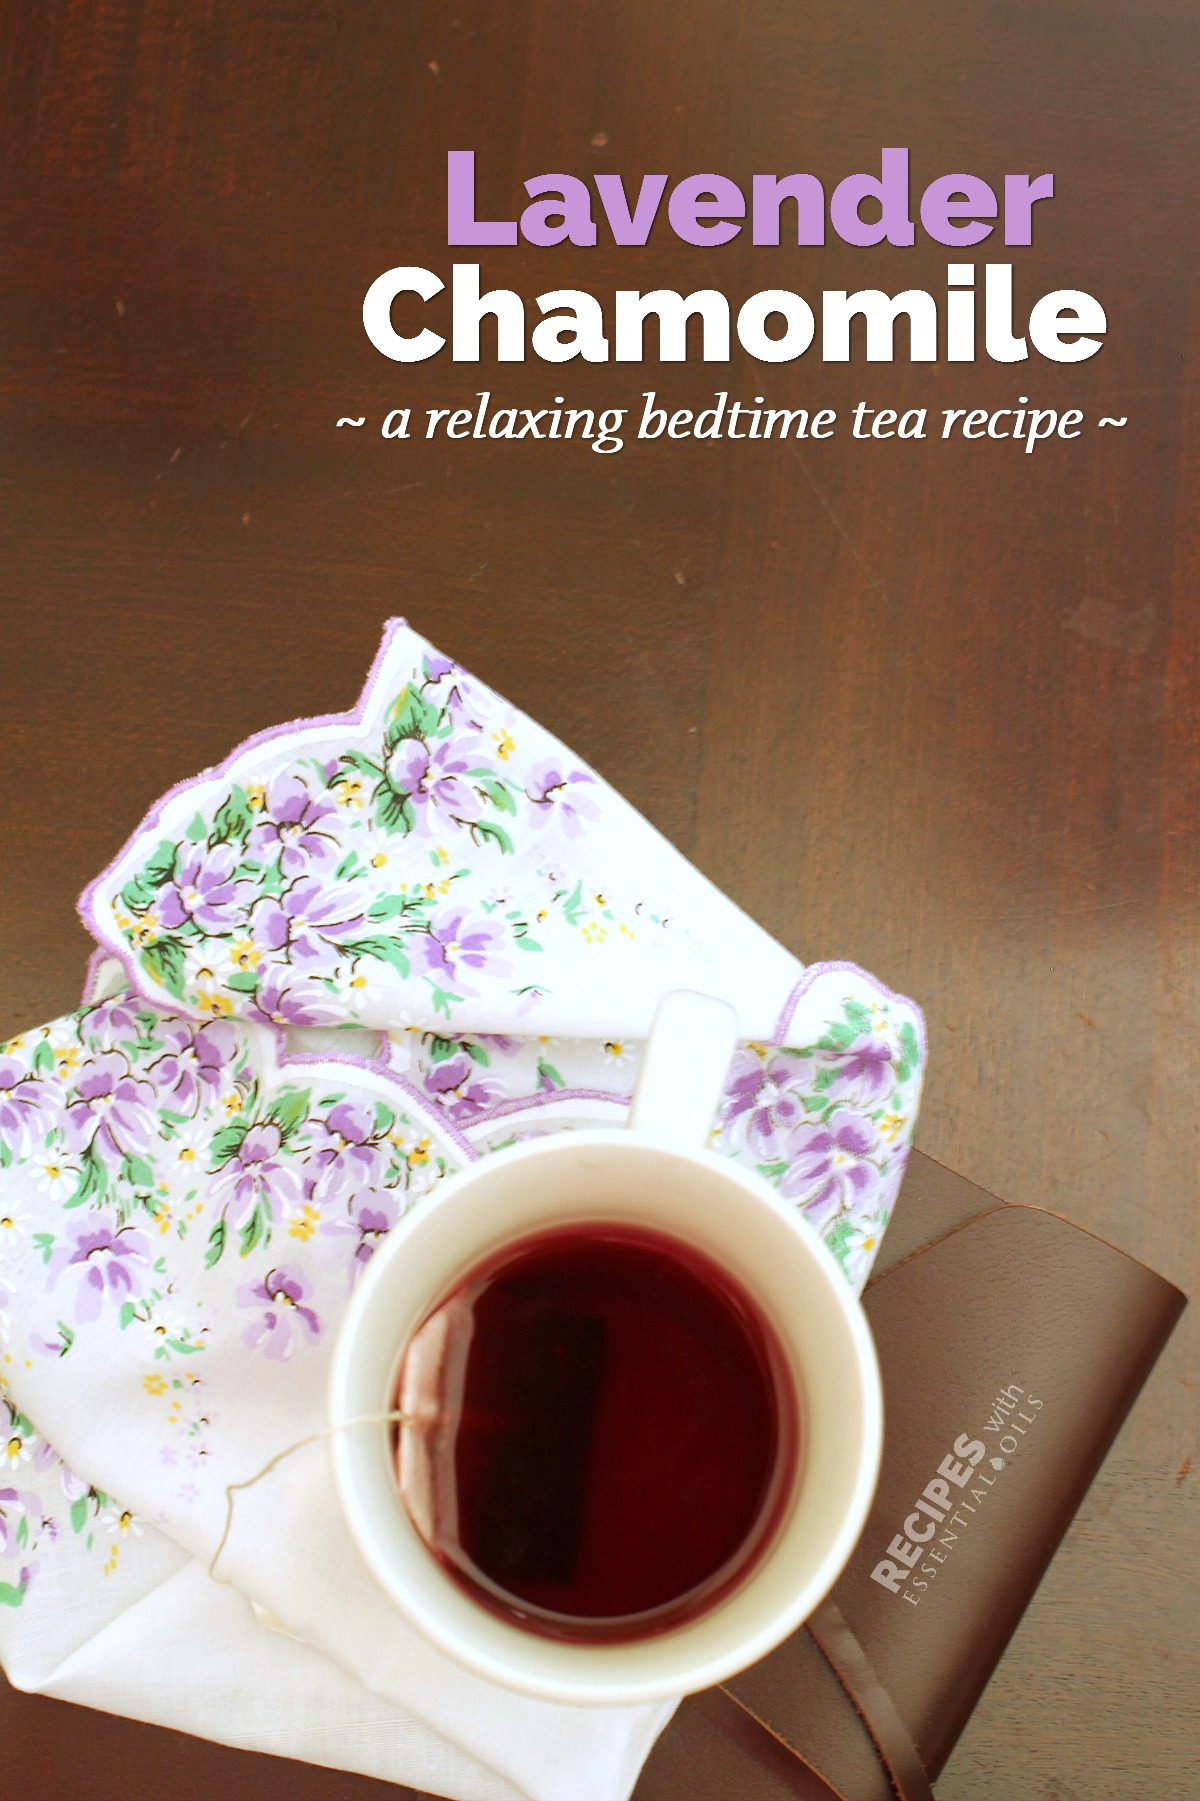 Lavender Chamomile Relaxing Bedtime Tea Recipe from RecipeswithEssentialOils.com